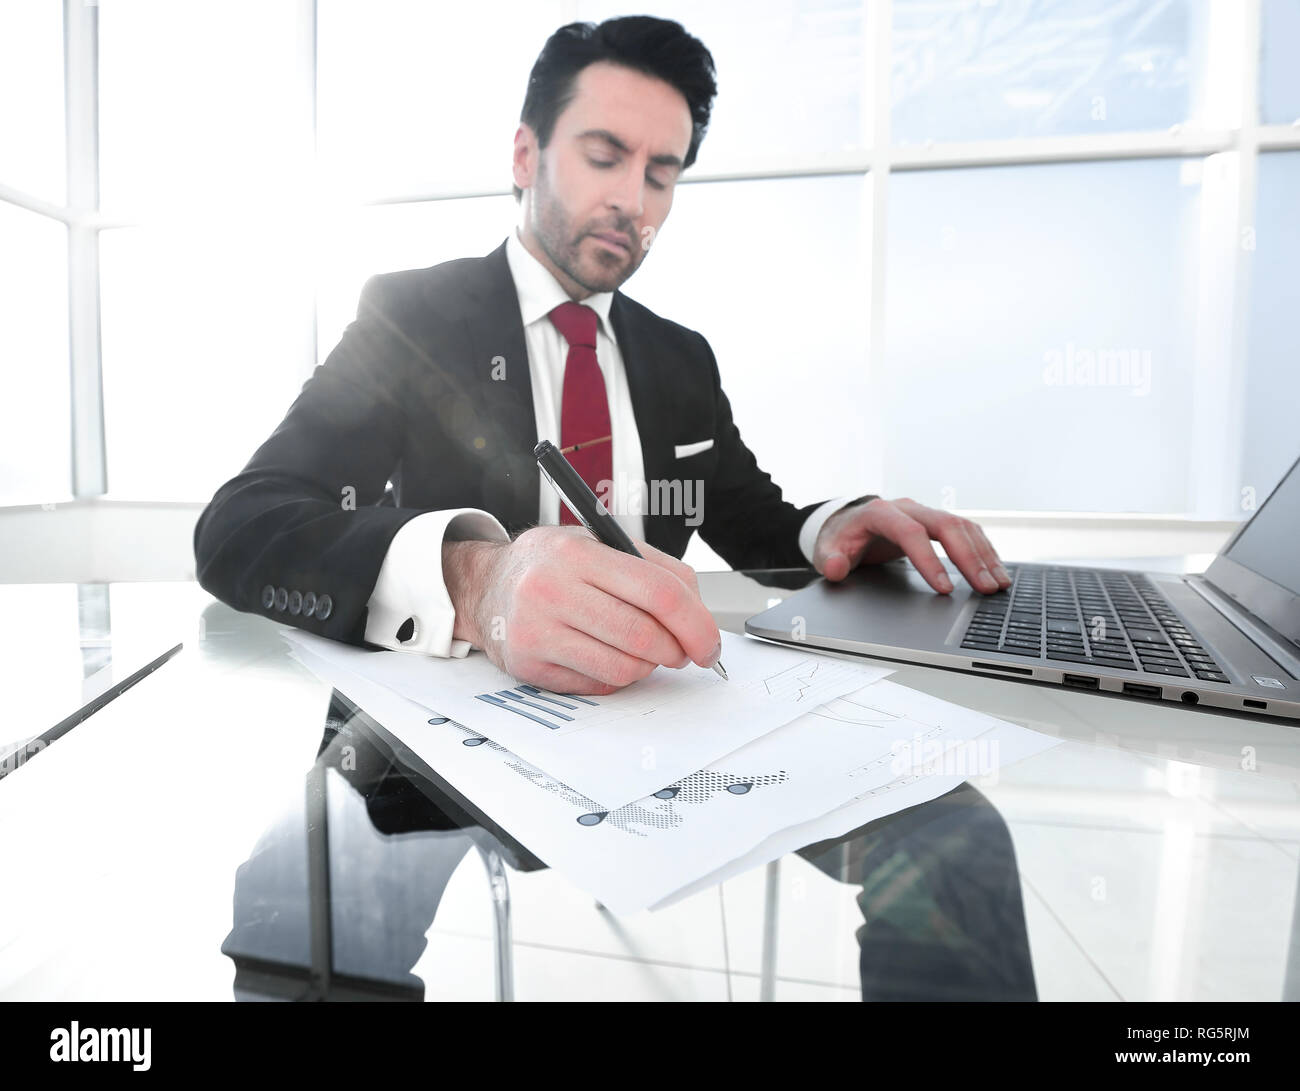 businessman uses a laptop to check financial data - Stock Image